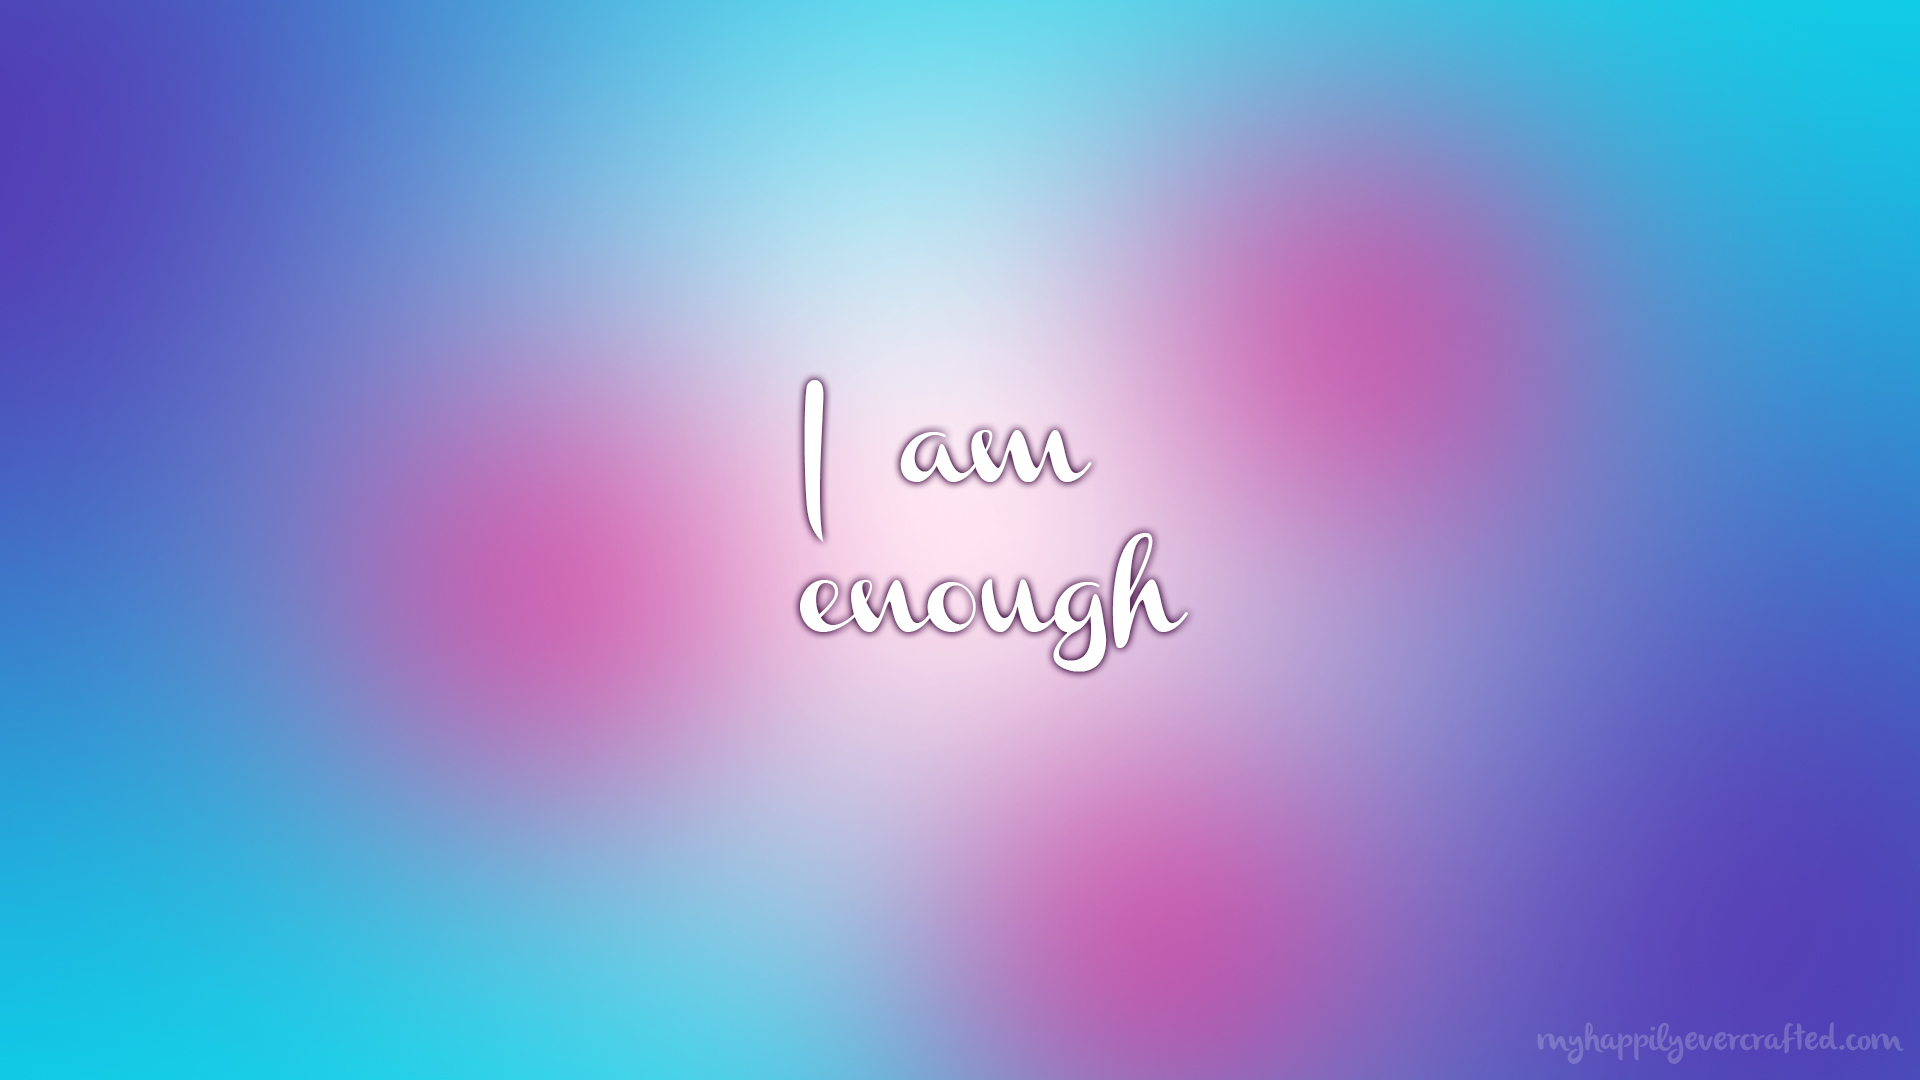 New Wallpaper – I am enough | My Happily Ever Crafted